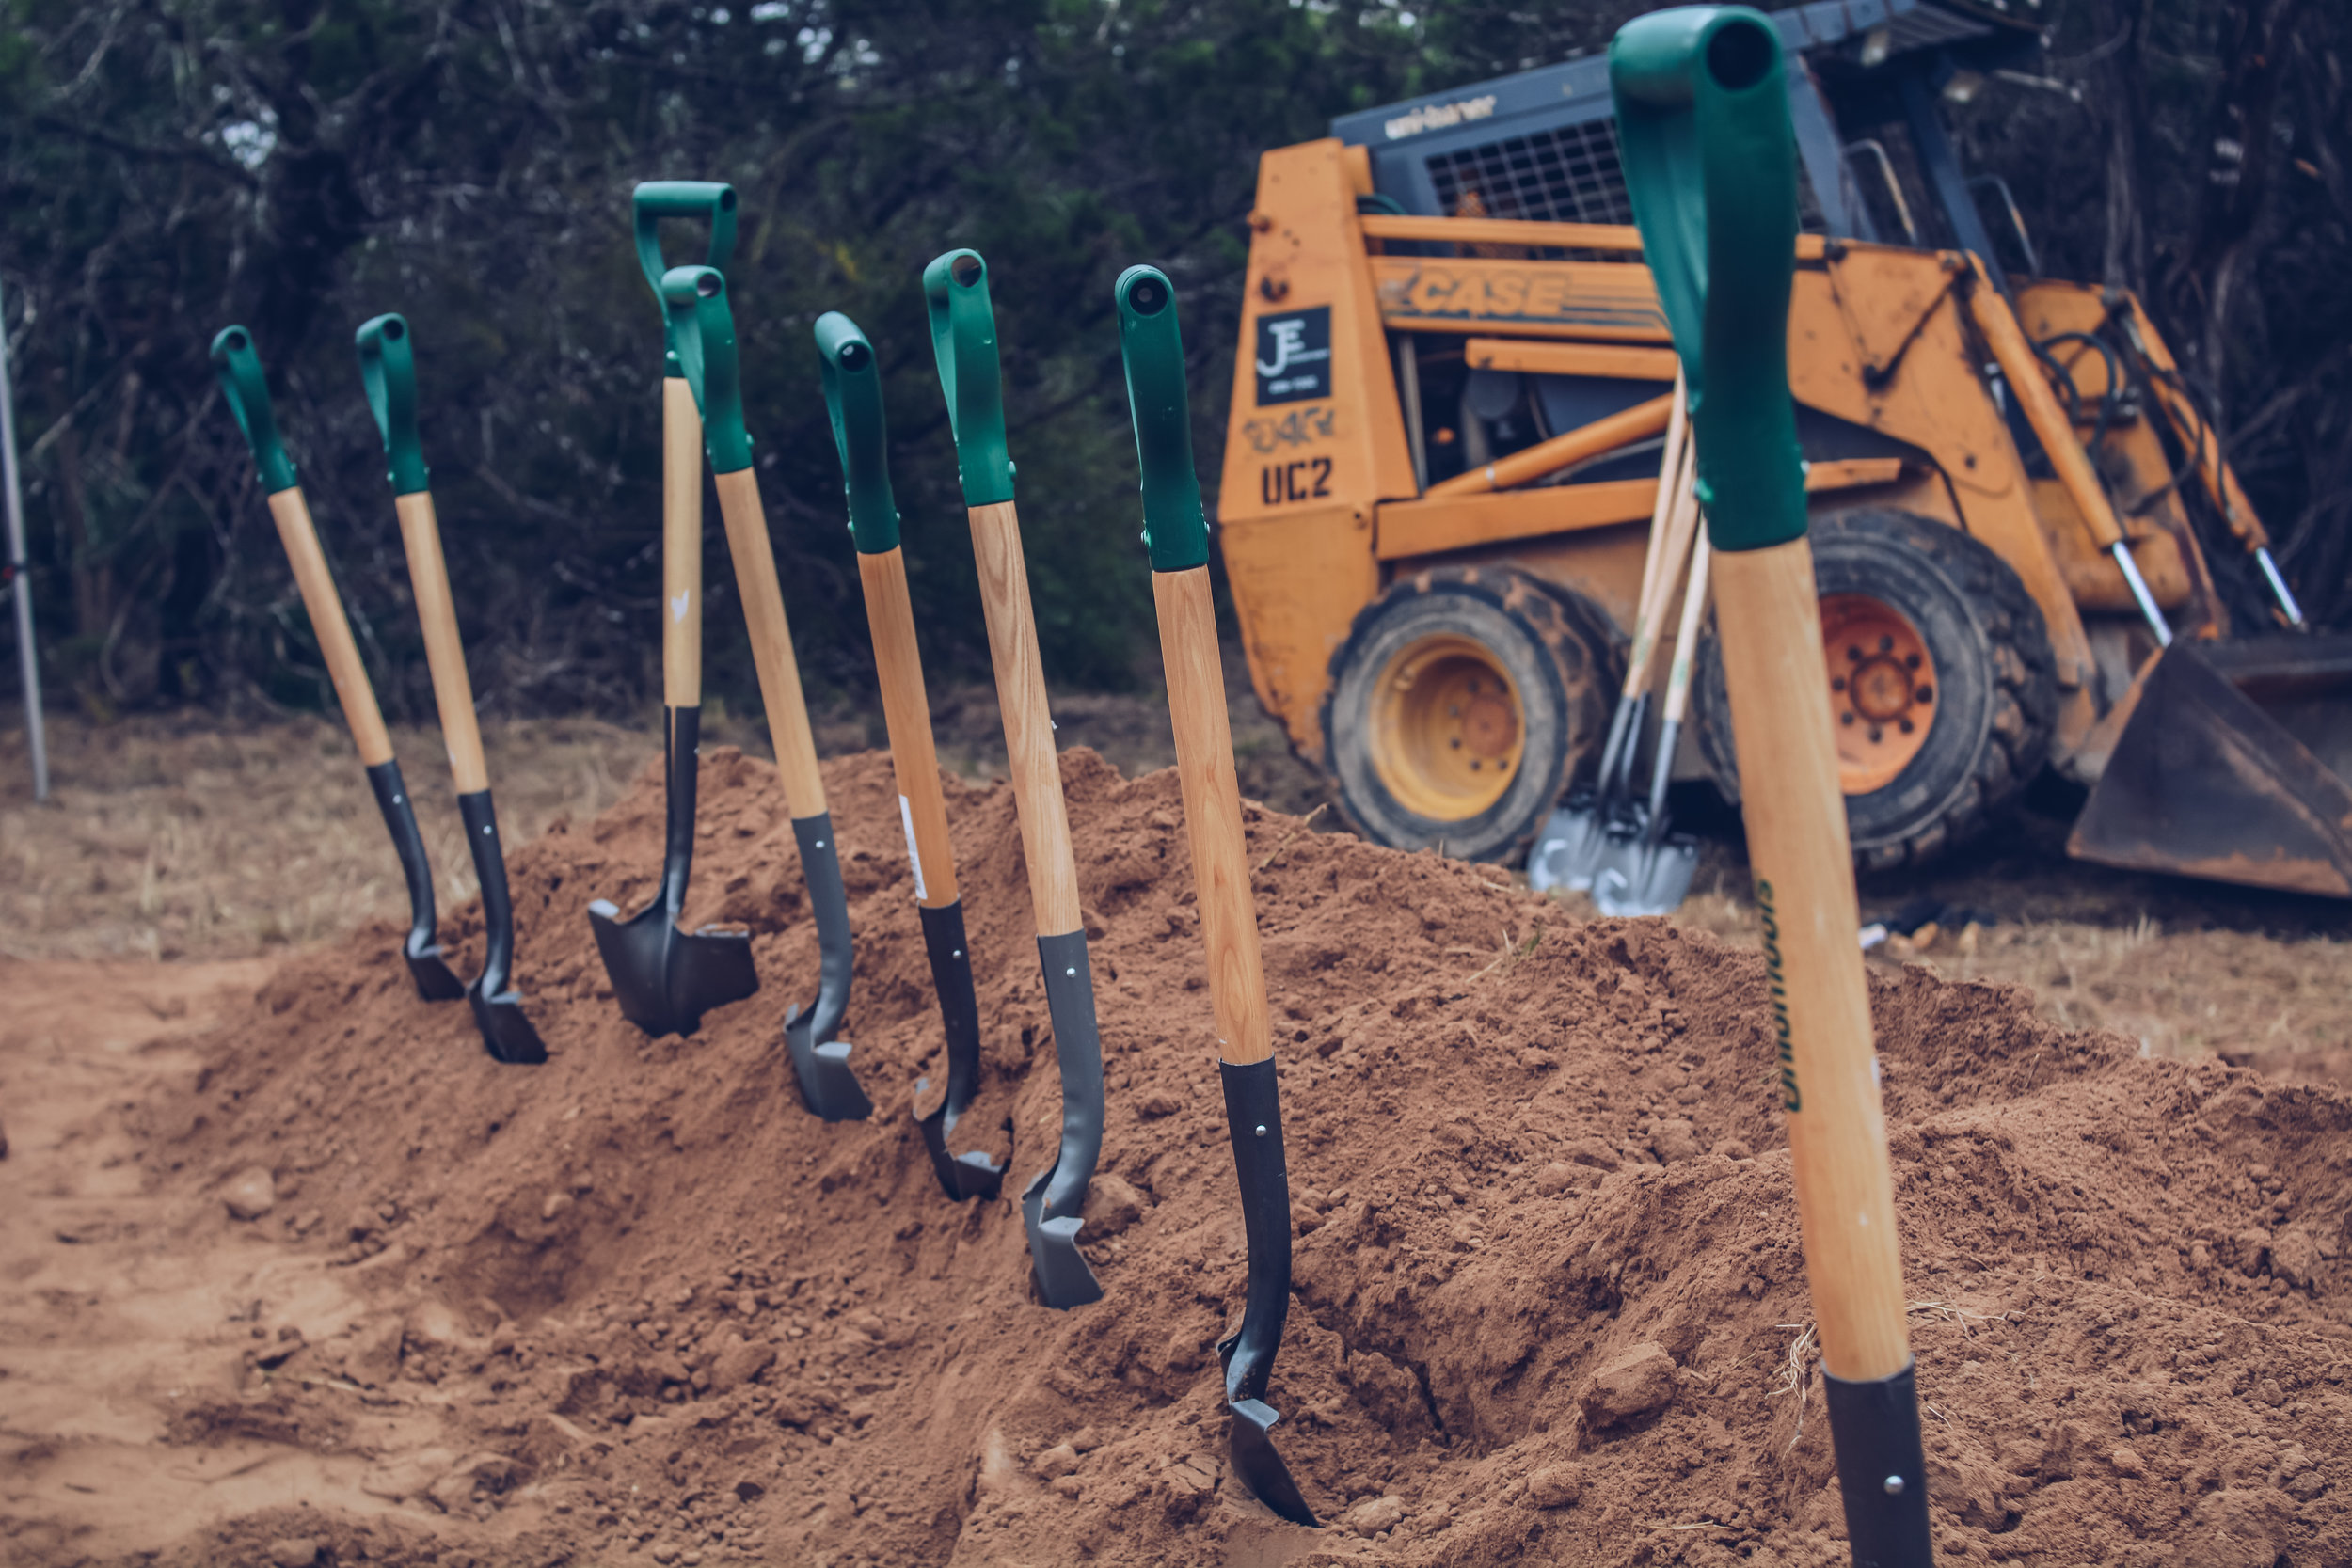 Shovels at the groundbreaking